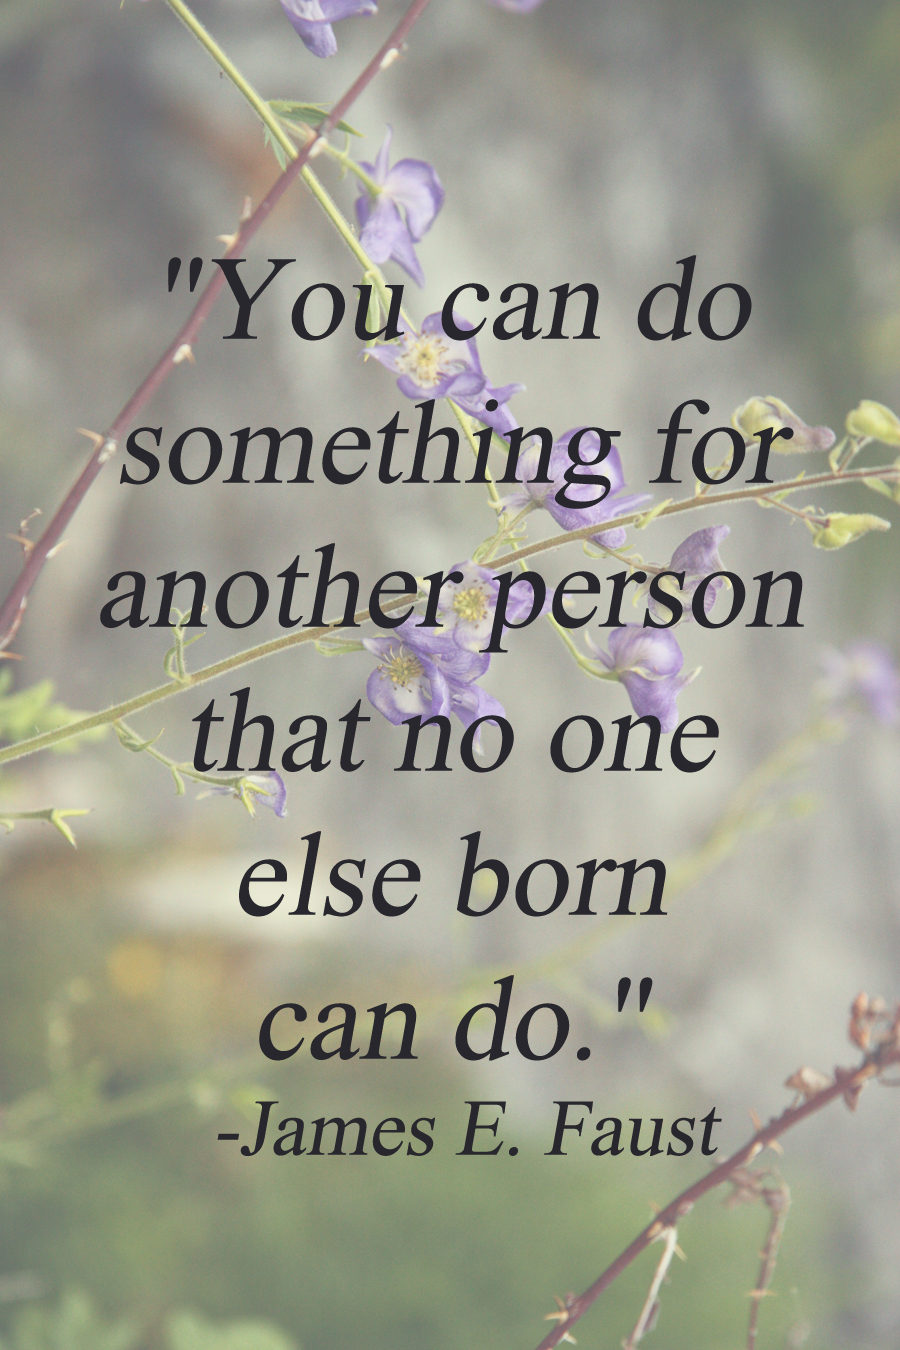 """""""You can do something for another person that no one else born can do."""" - James E. Faust  Stay gold Autumn"""